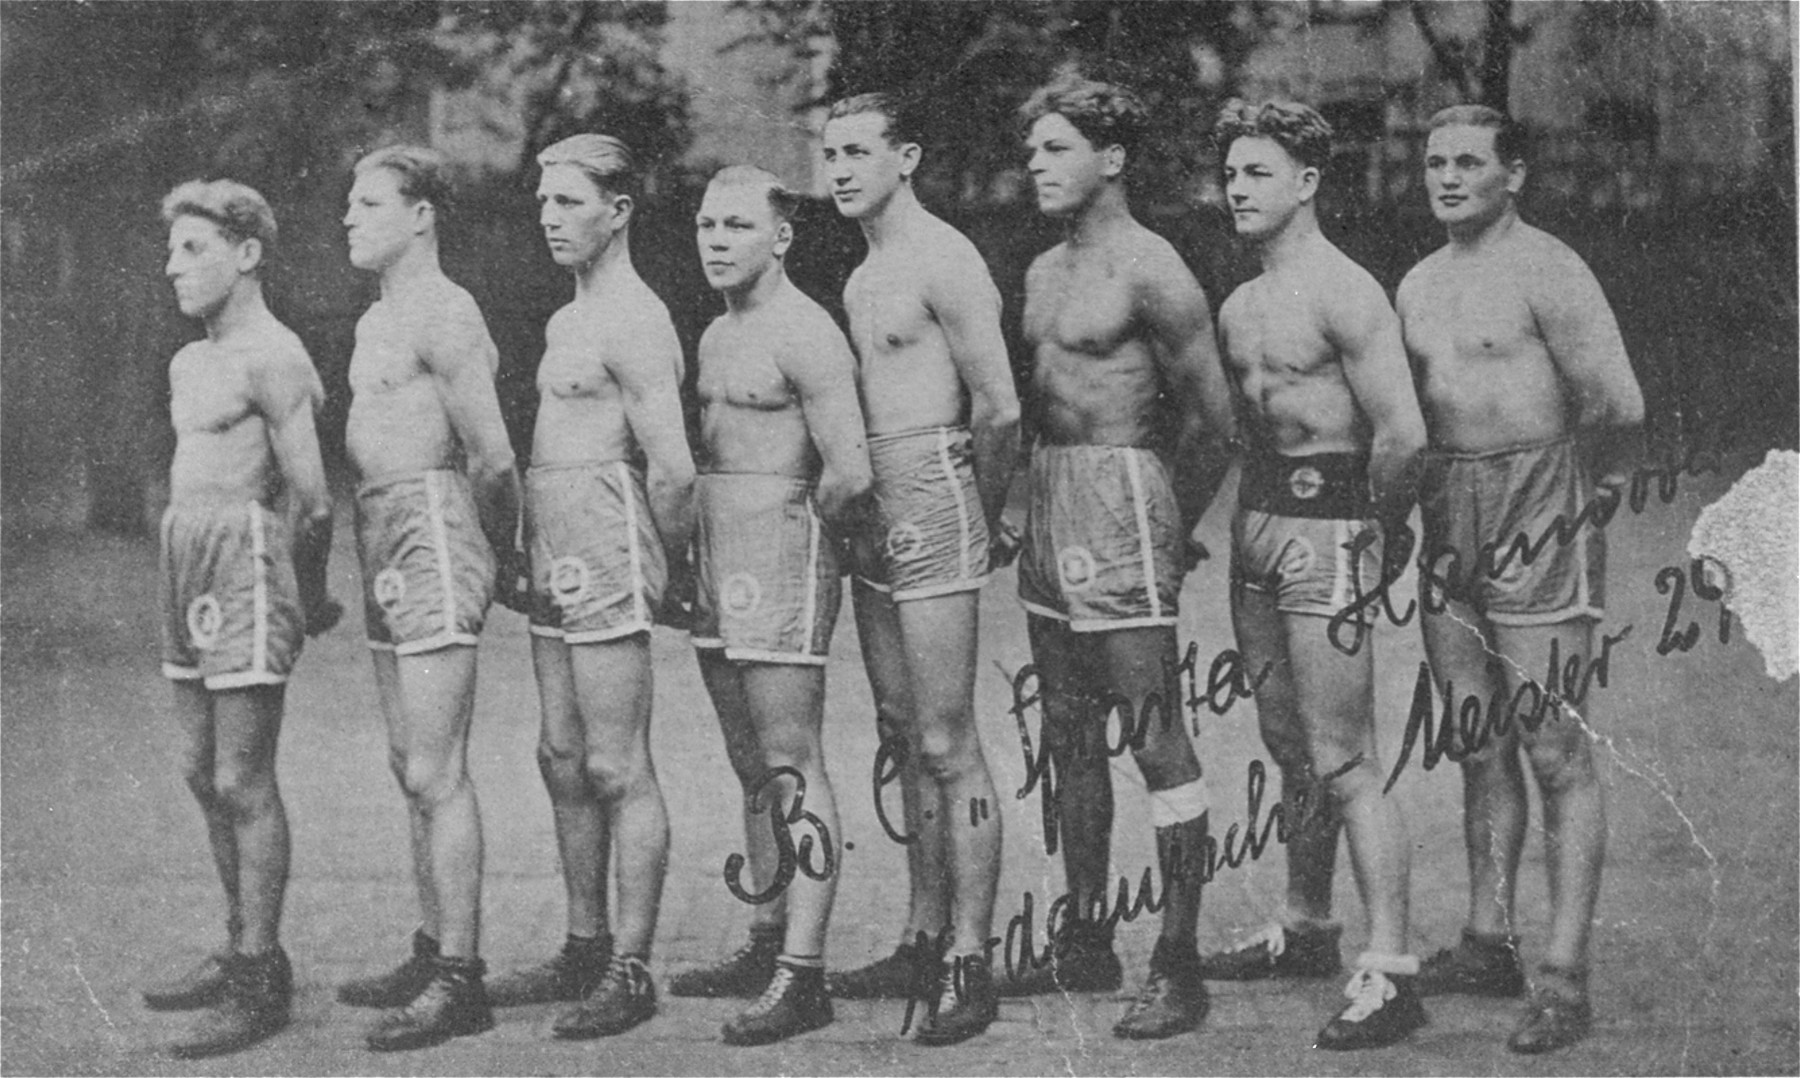 "Group portrait of the members of the German boxing club, Sparta, after winning the North German championship.  The Sinti boxing champion, Johann (Rukelie) Trollmann (1906-1943), is pictured third from the right.  In 1932 Johann Trollmann, a Gypsy from Hannover, was considered one of the most successful boxers in Germany.  His future looked promising until the Nazi seizure of power and the subsequent aryanization of the German boxing league.  On June 9, 1933, Trollmann fought a bout to determine the new middle-weight championship.  (The title had been taken away from the Jewish boxer Erich Seelig in March.)  Though the judges gave the victory to Trollmann, officials of the boxing league intervened to declare it a draw.  Only after strong protests from the audience did the officials back down and award him the championship.  However, soon after the fight the boxing league withdrew the title.  In order to continue boxing Trollmann was forced to abandon his particular boxing style, which sports journalists had begun to ridicule in their magazines.  As a result, he was knocked out in an important bout of July 21, 1933.  Subsequently, he fought and lost several other matches, apparently due to pressure from the boxing league.  In 1939 Trollmann was drafted into the German army, where he fought with the infantry on the eastern front.  In 1942 he was arrested while at the home of his brother.  He was taken to a police station and severely beaten.  From there Trollmann was deported to the Neuengamme concentration camp, where he was forced to perform hard labor.  SS camp personnel often brought the starving Trollmann to their gatherings, plied him with drink, and then forced him to box with them.  He was shot on February 9, 1943.  [Krausnick, Michail, ""Wo sind sie hingekommen?""  Bleicher Verlag, Gerlingen, 1945]"